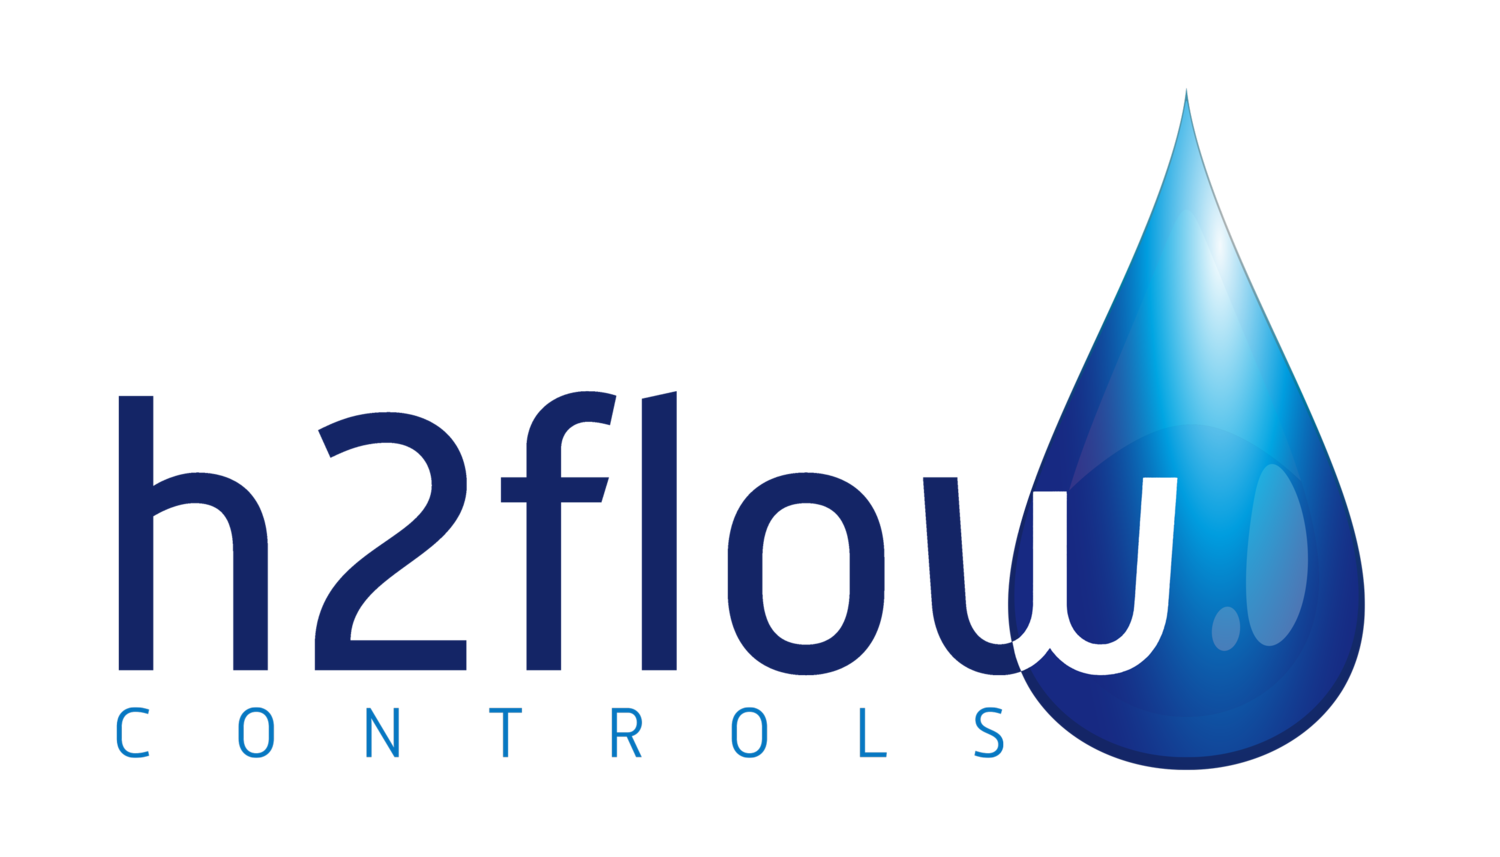 M20 Shaft Power Monitor H2flow Controls Which Displays The Cost Of Powering Monitored Load